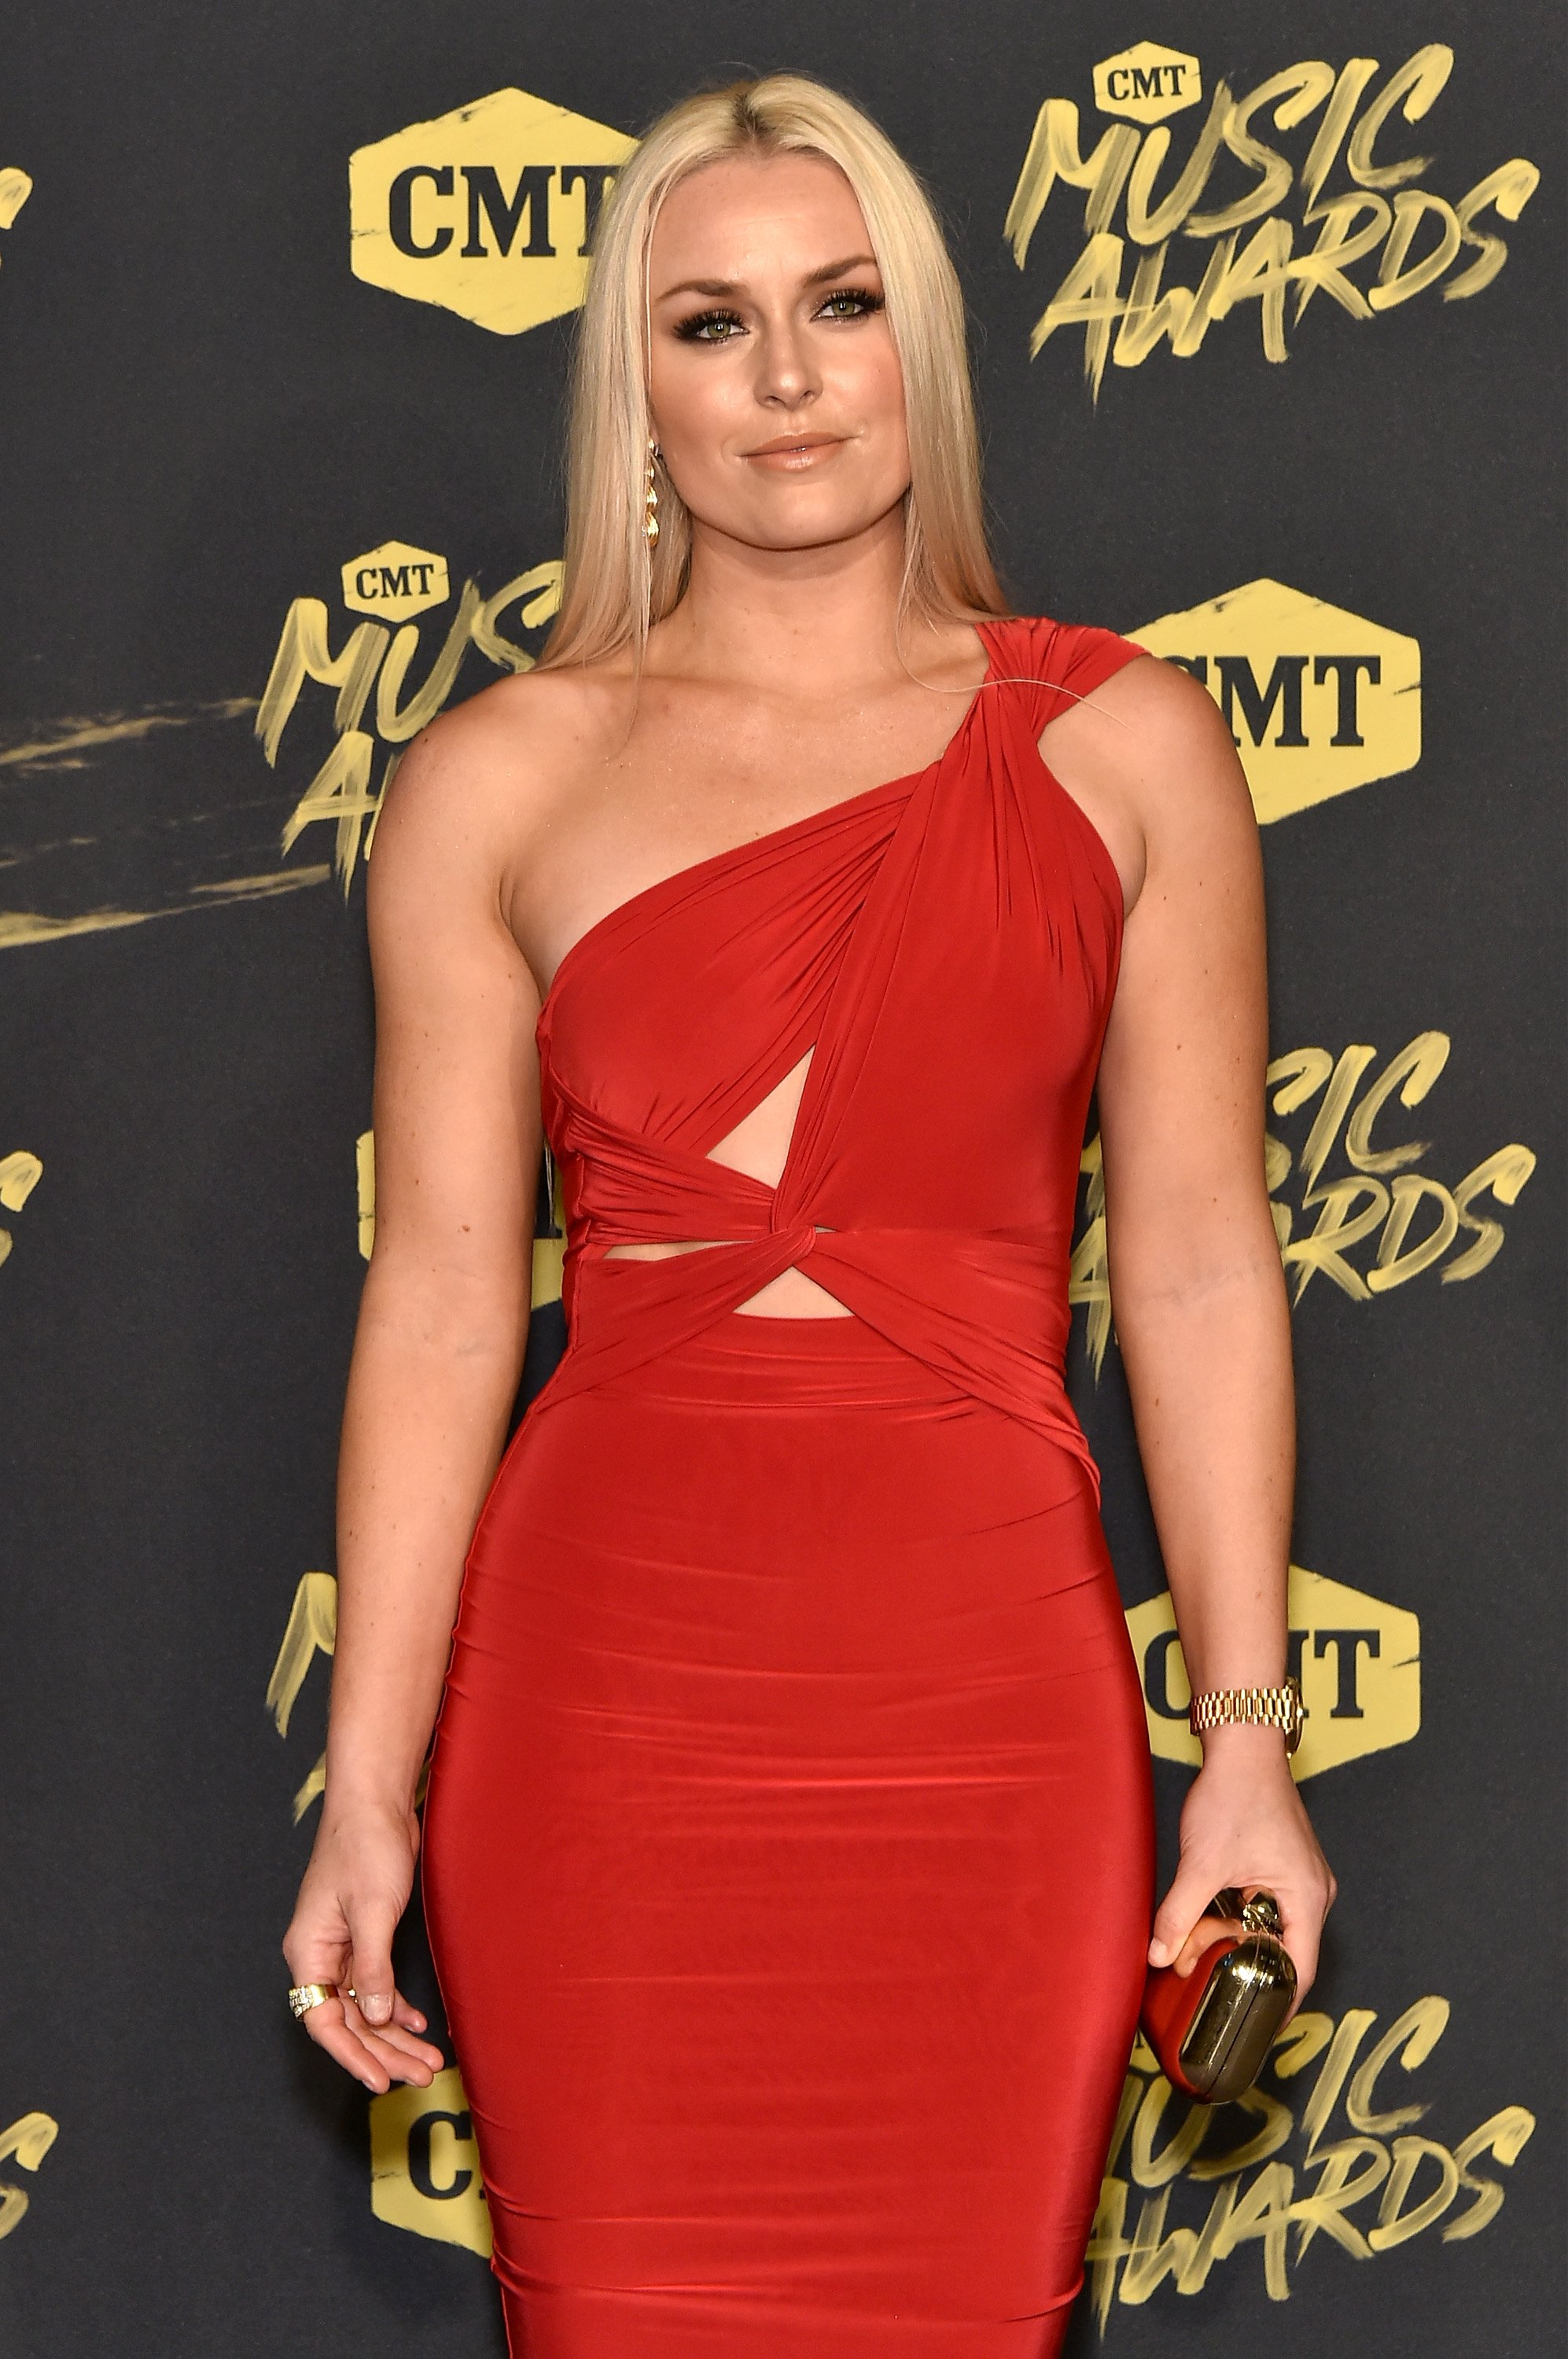 Lindsey Vonn attends the 2018 CMT Music Awards on June 6, 2018, in Nashville, Tennessee. | Source: Getty Images.